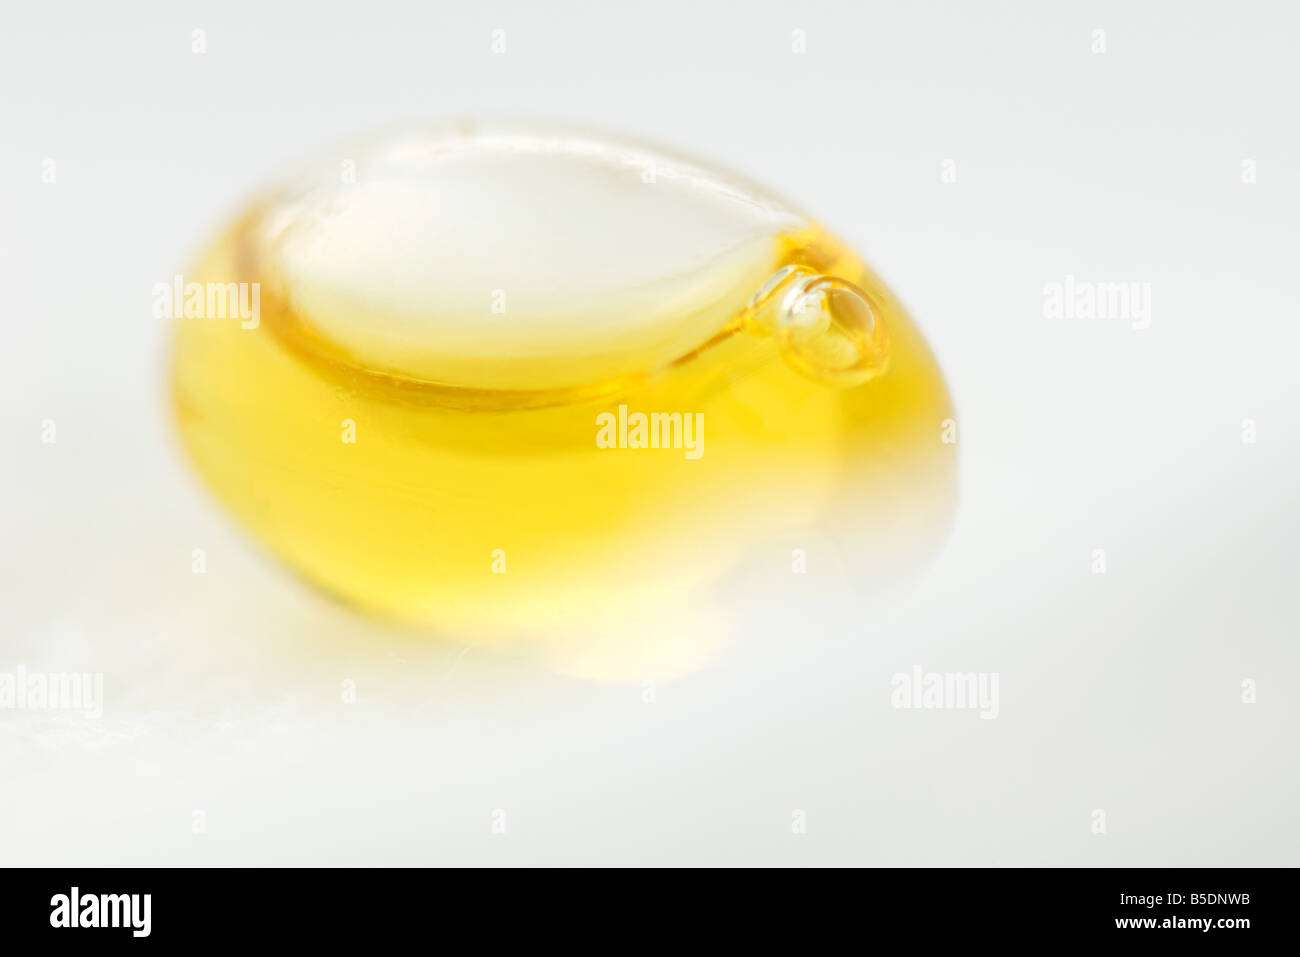 Yellow liquid inside of egg-shaped container, close-up - Stock Image